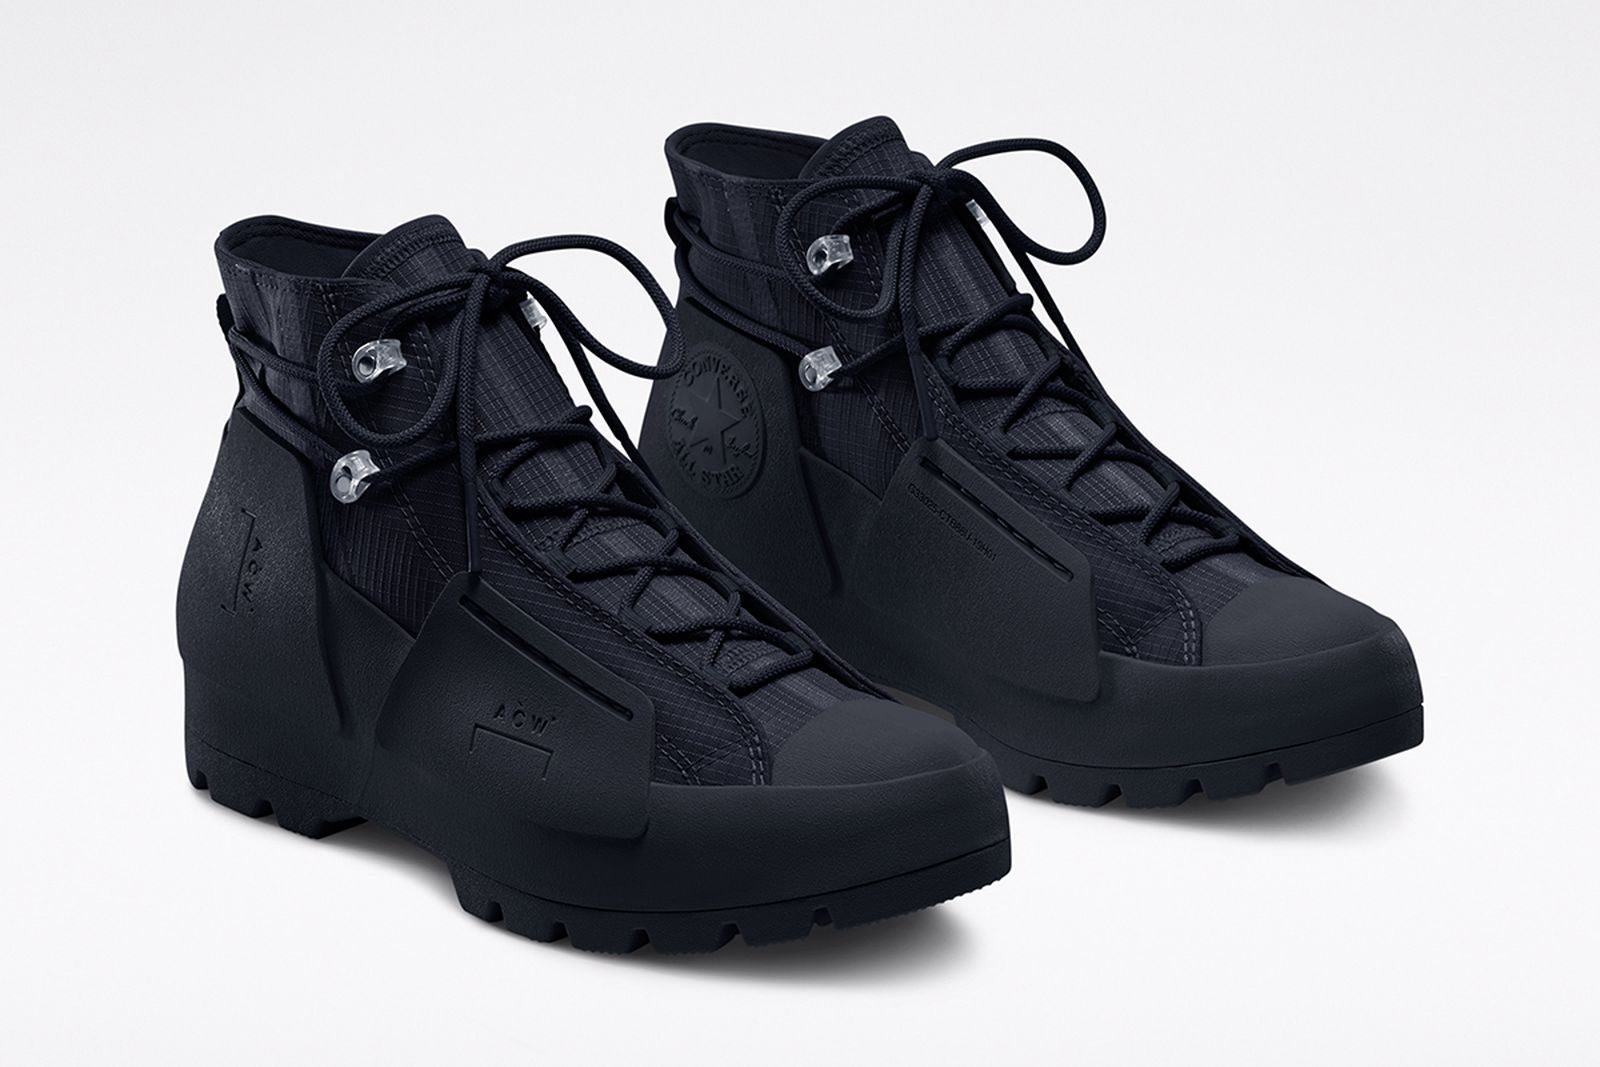 a-cold-wall-converse-chuck-taylor-lugged-black-release-date-price-1-04